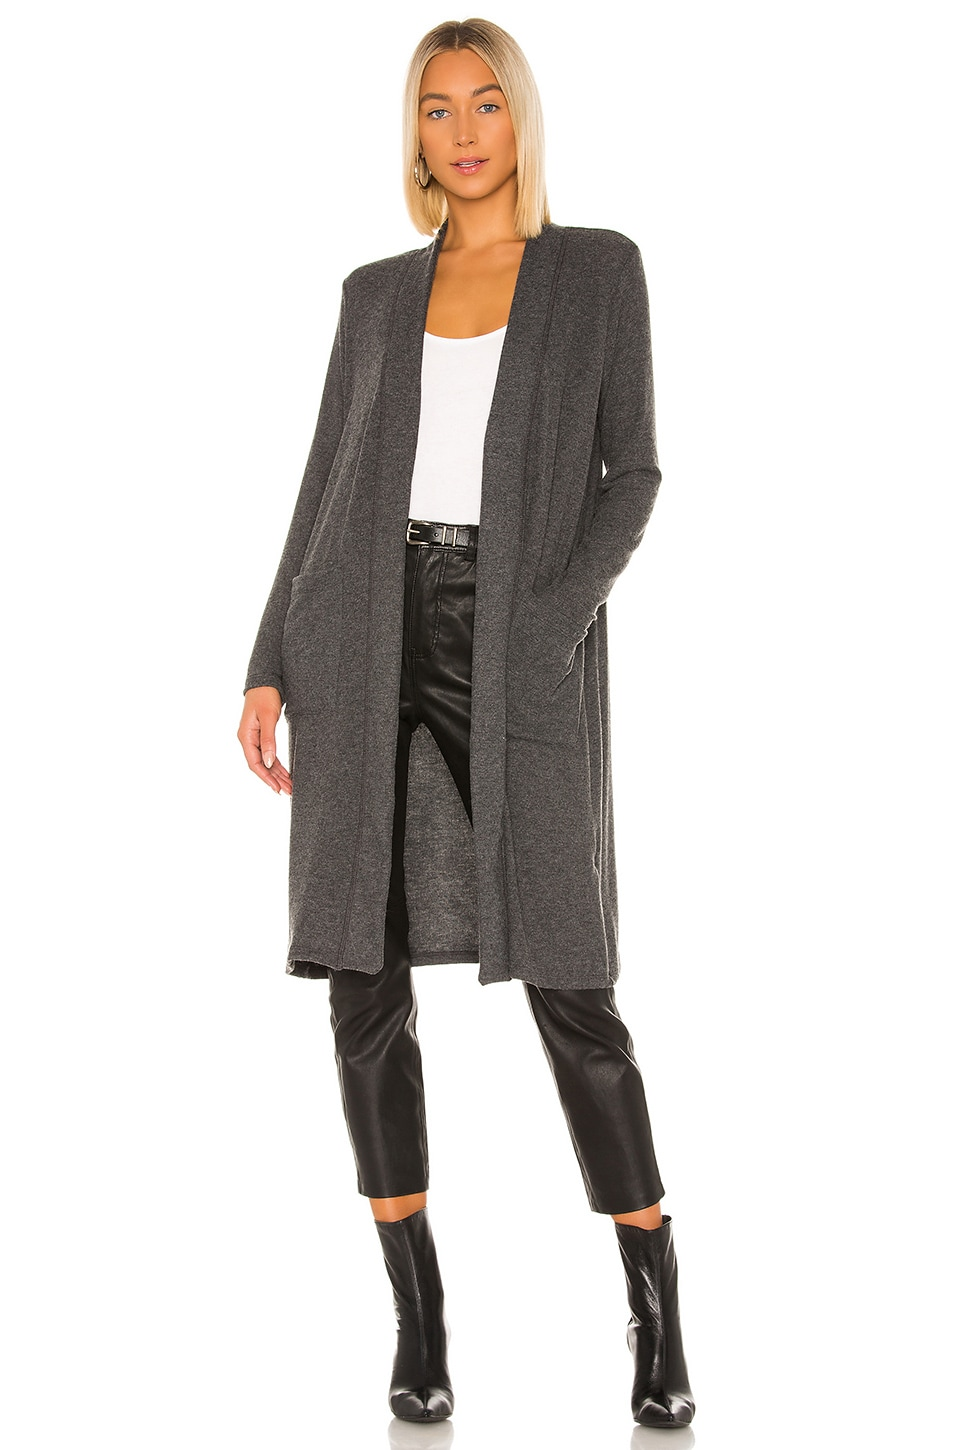 Michael Stars Pierre Long Cardigan in Charcoal